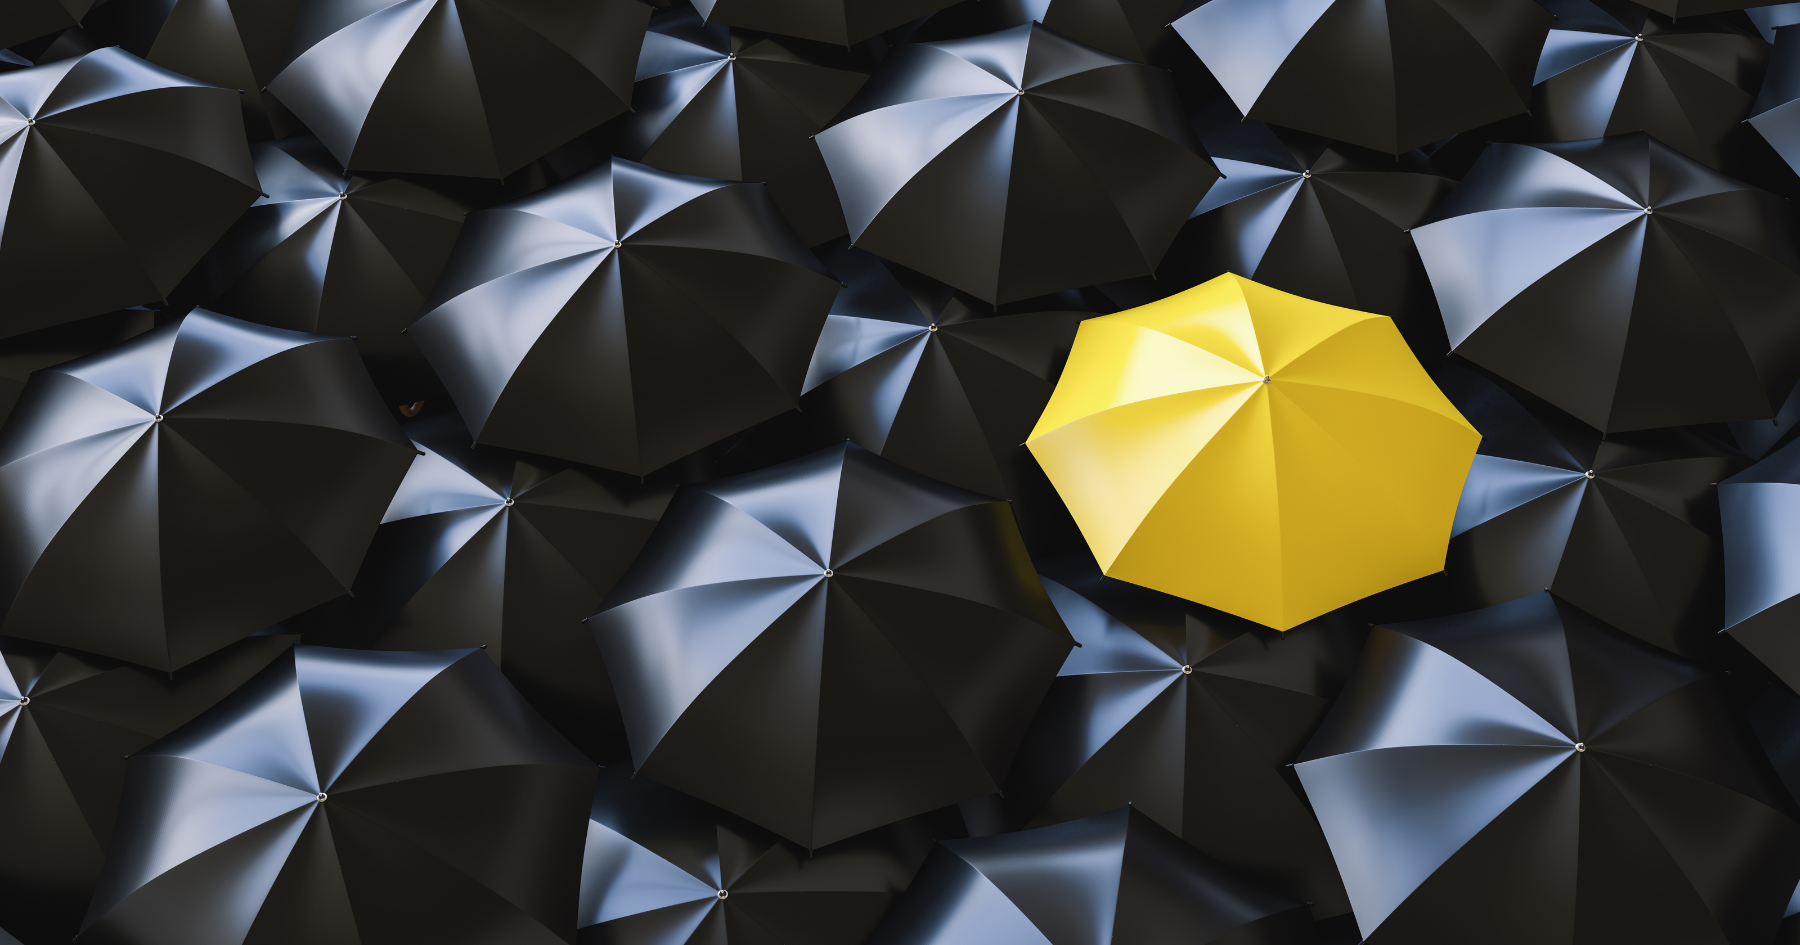 6 ways to make your business stand out from the crowd